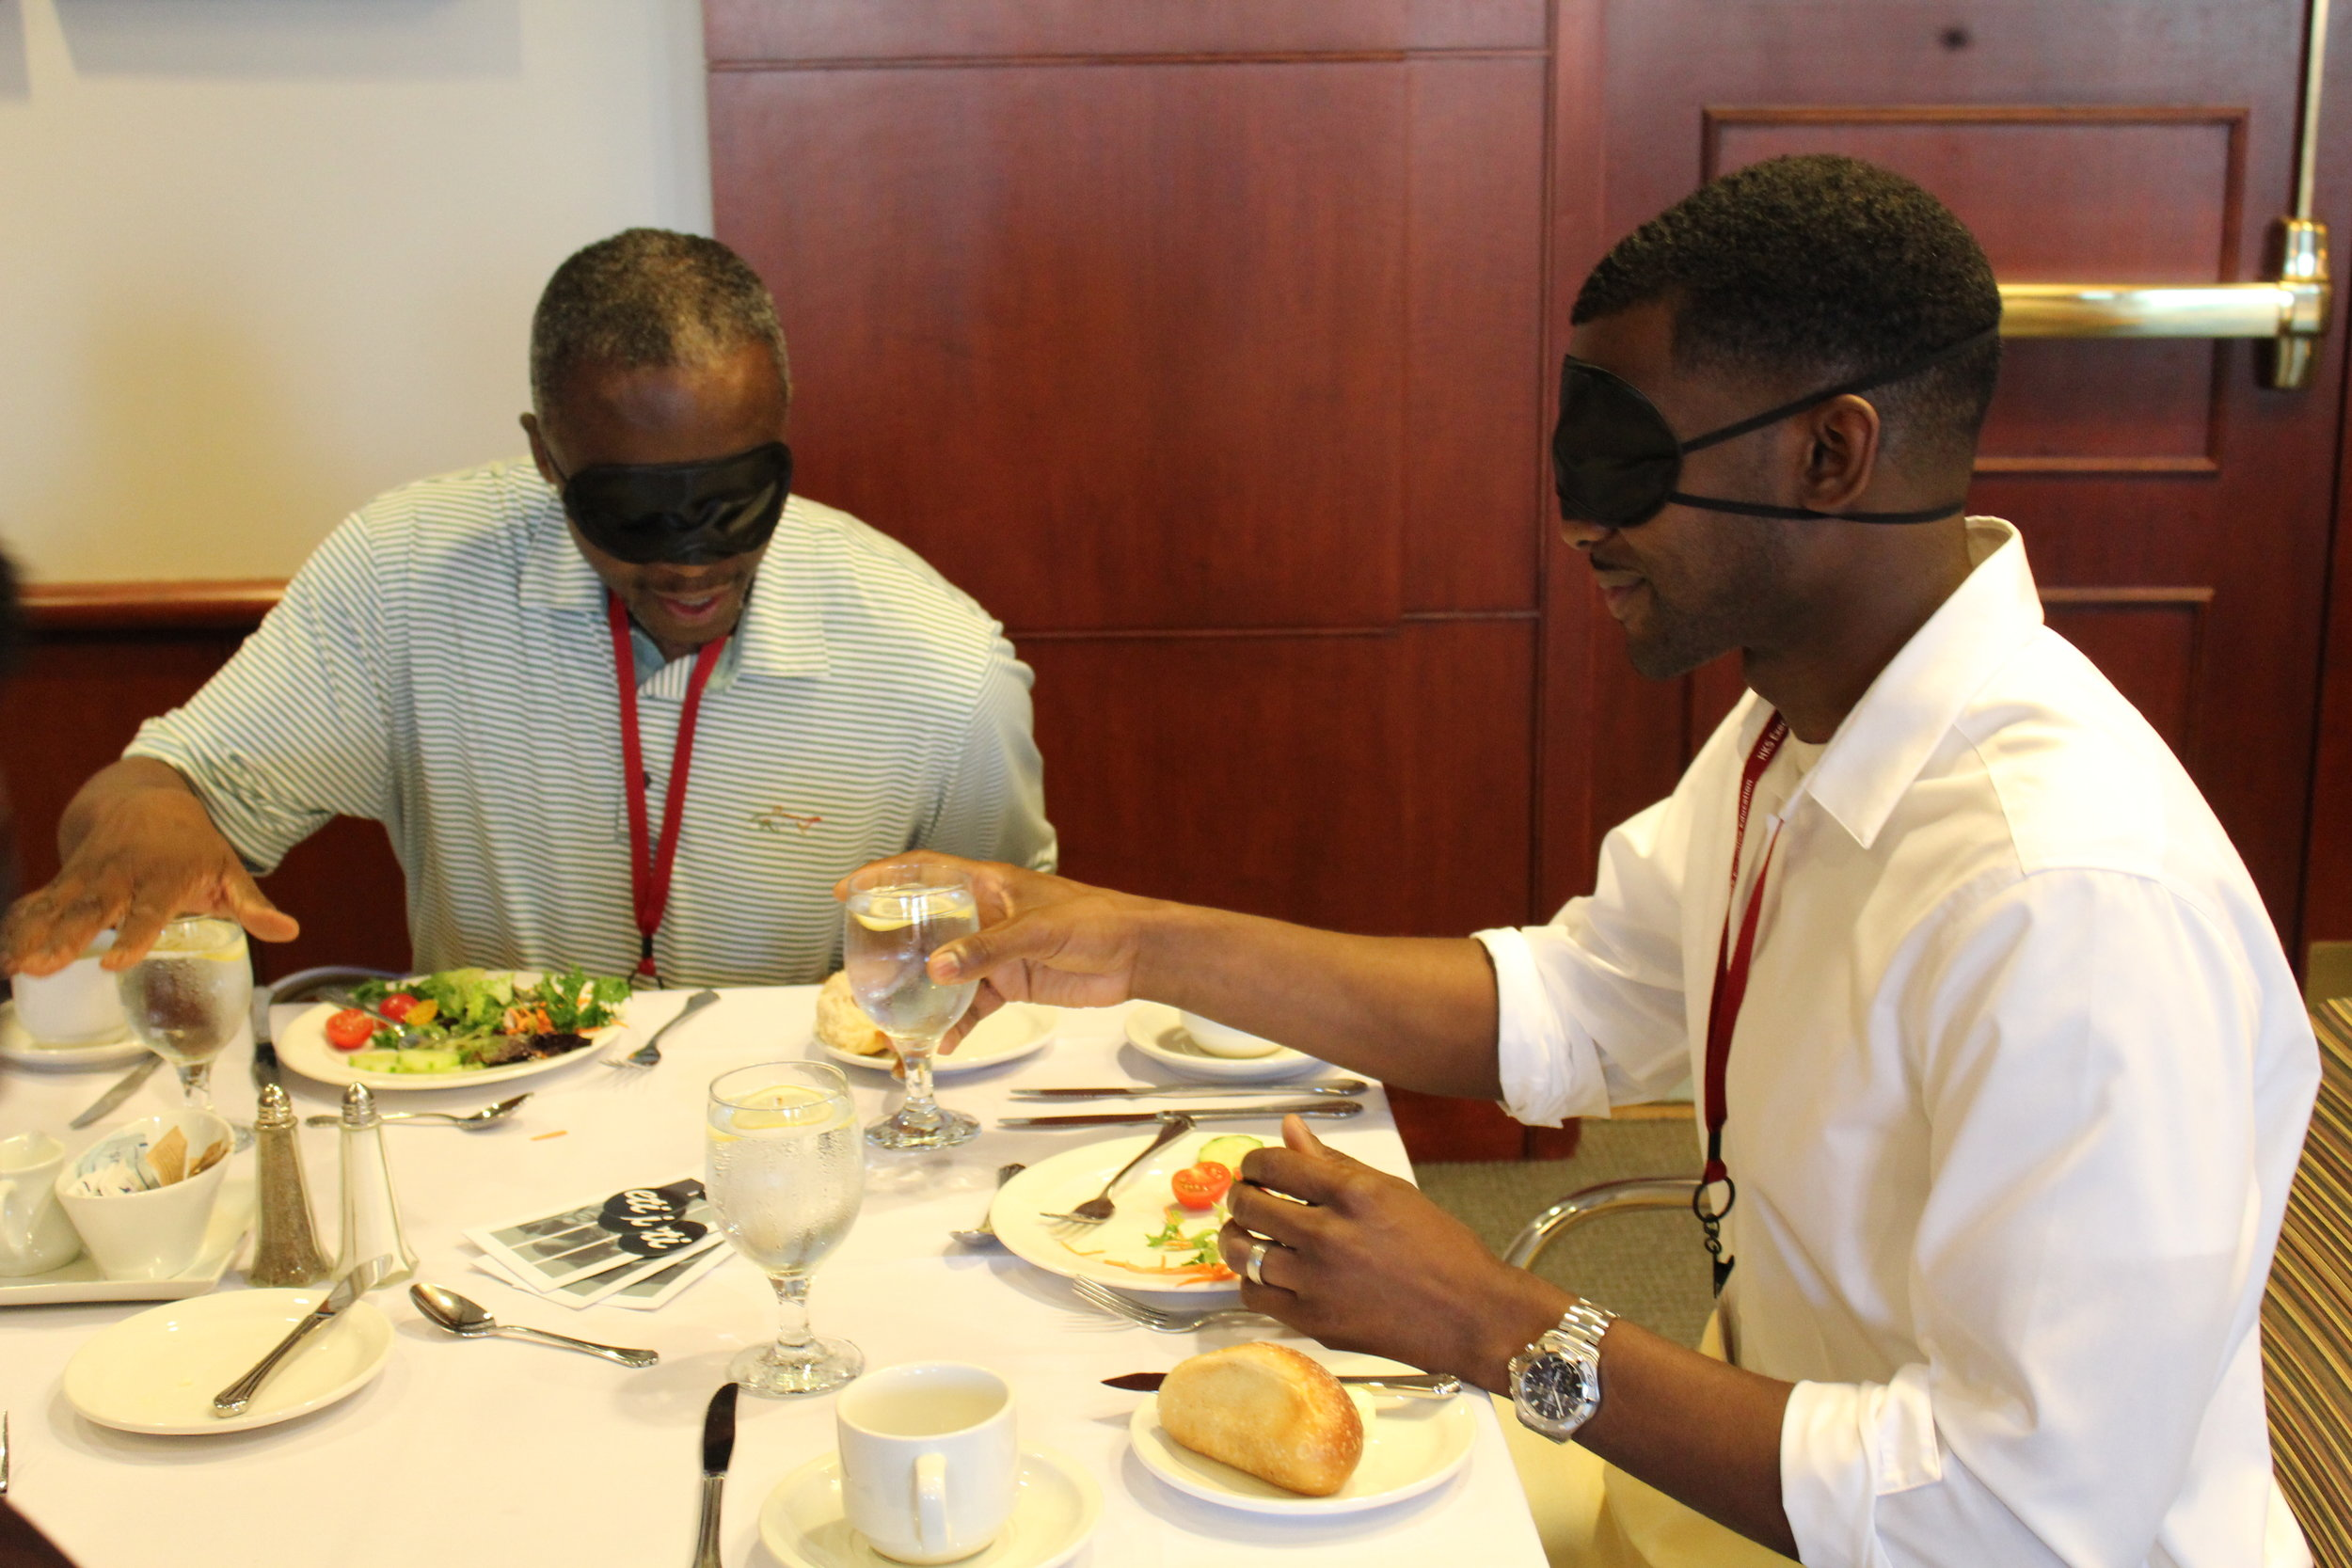 Two blindfolded participants sit at a table and try to locate their own glasses of water during their meal.